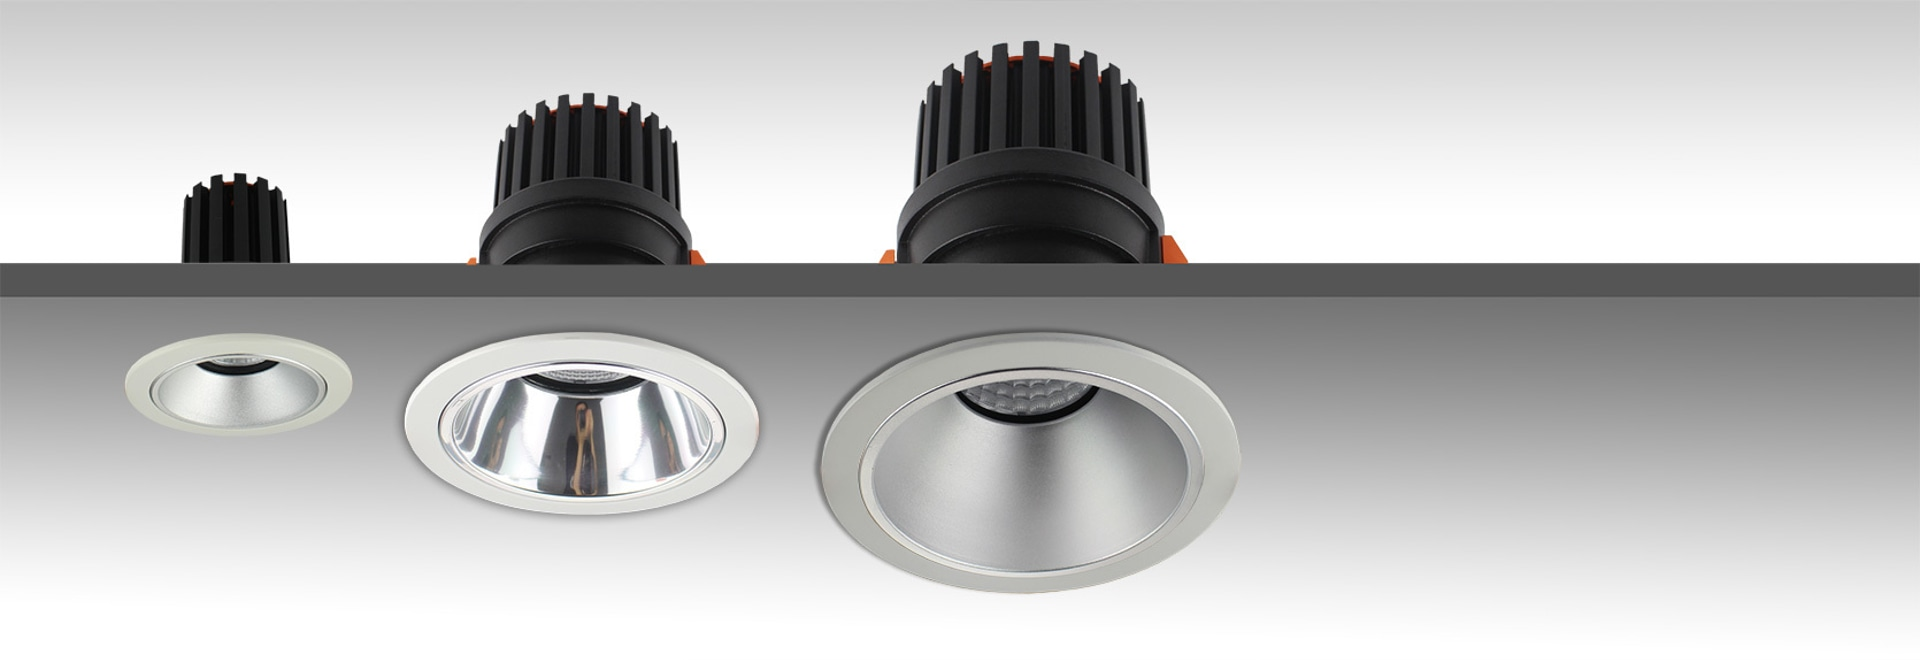 INNOVA Deep optical Downlight & Spotlight